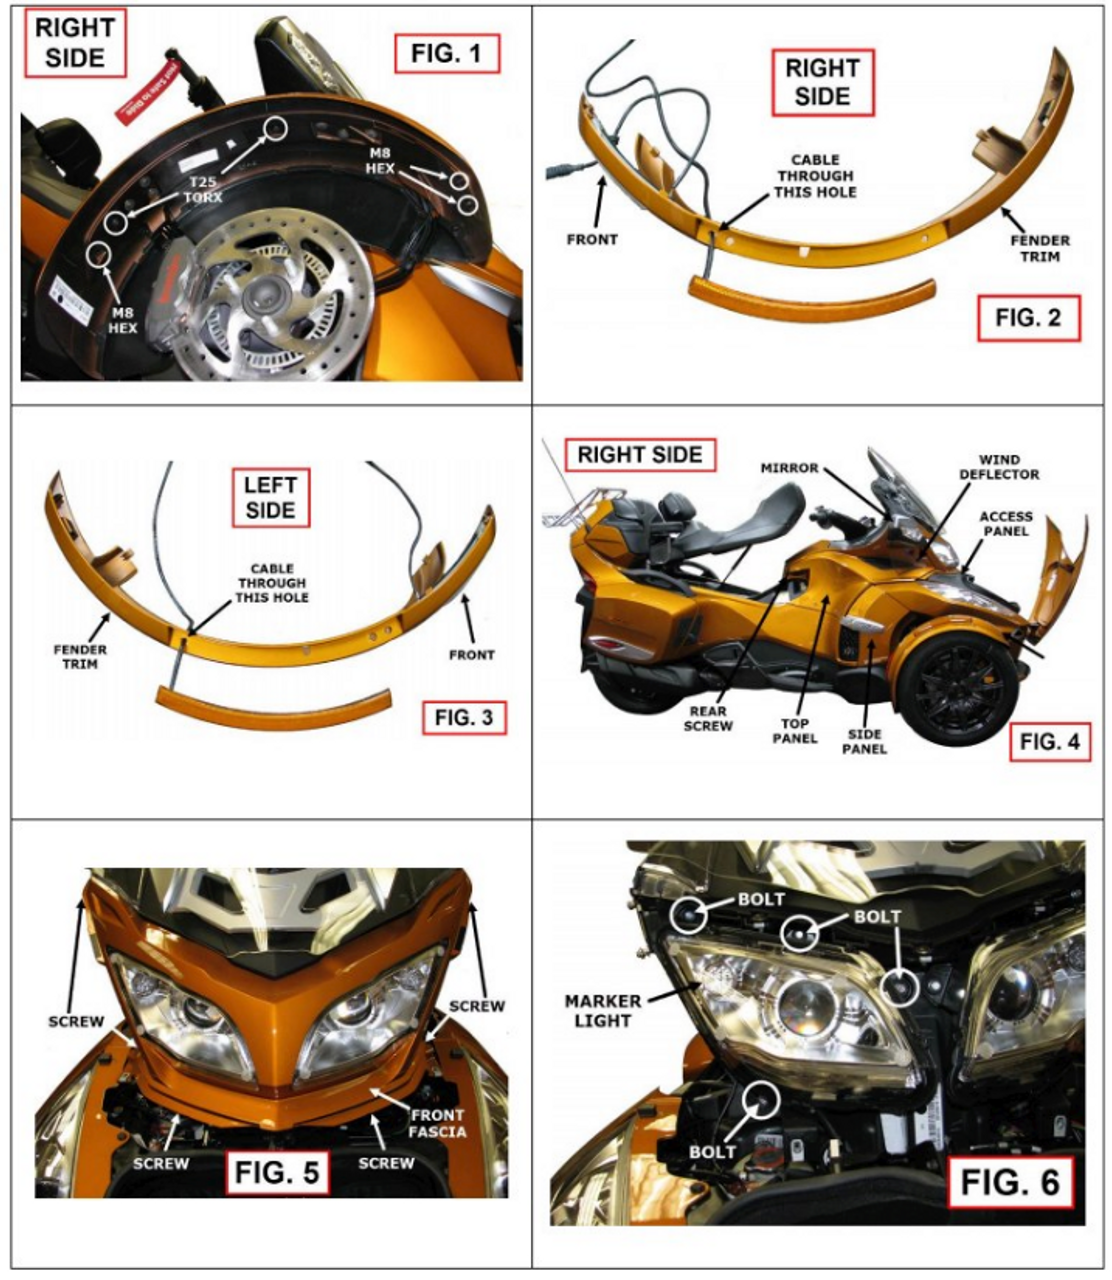 Show Chrome® Front Fender LED Reflectors Next Gen. (RT Complete Kit) (SC-RT-173A-174A) Lamonster Approved Install Images